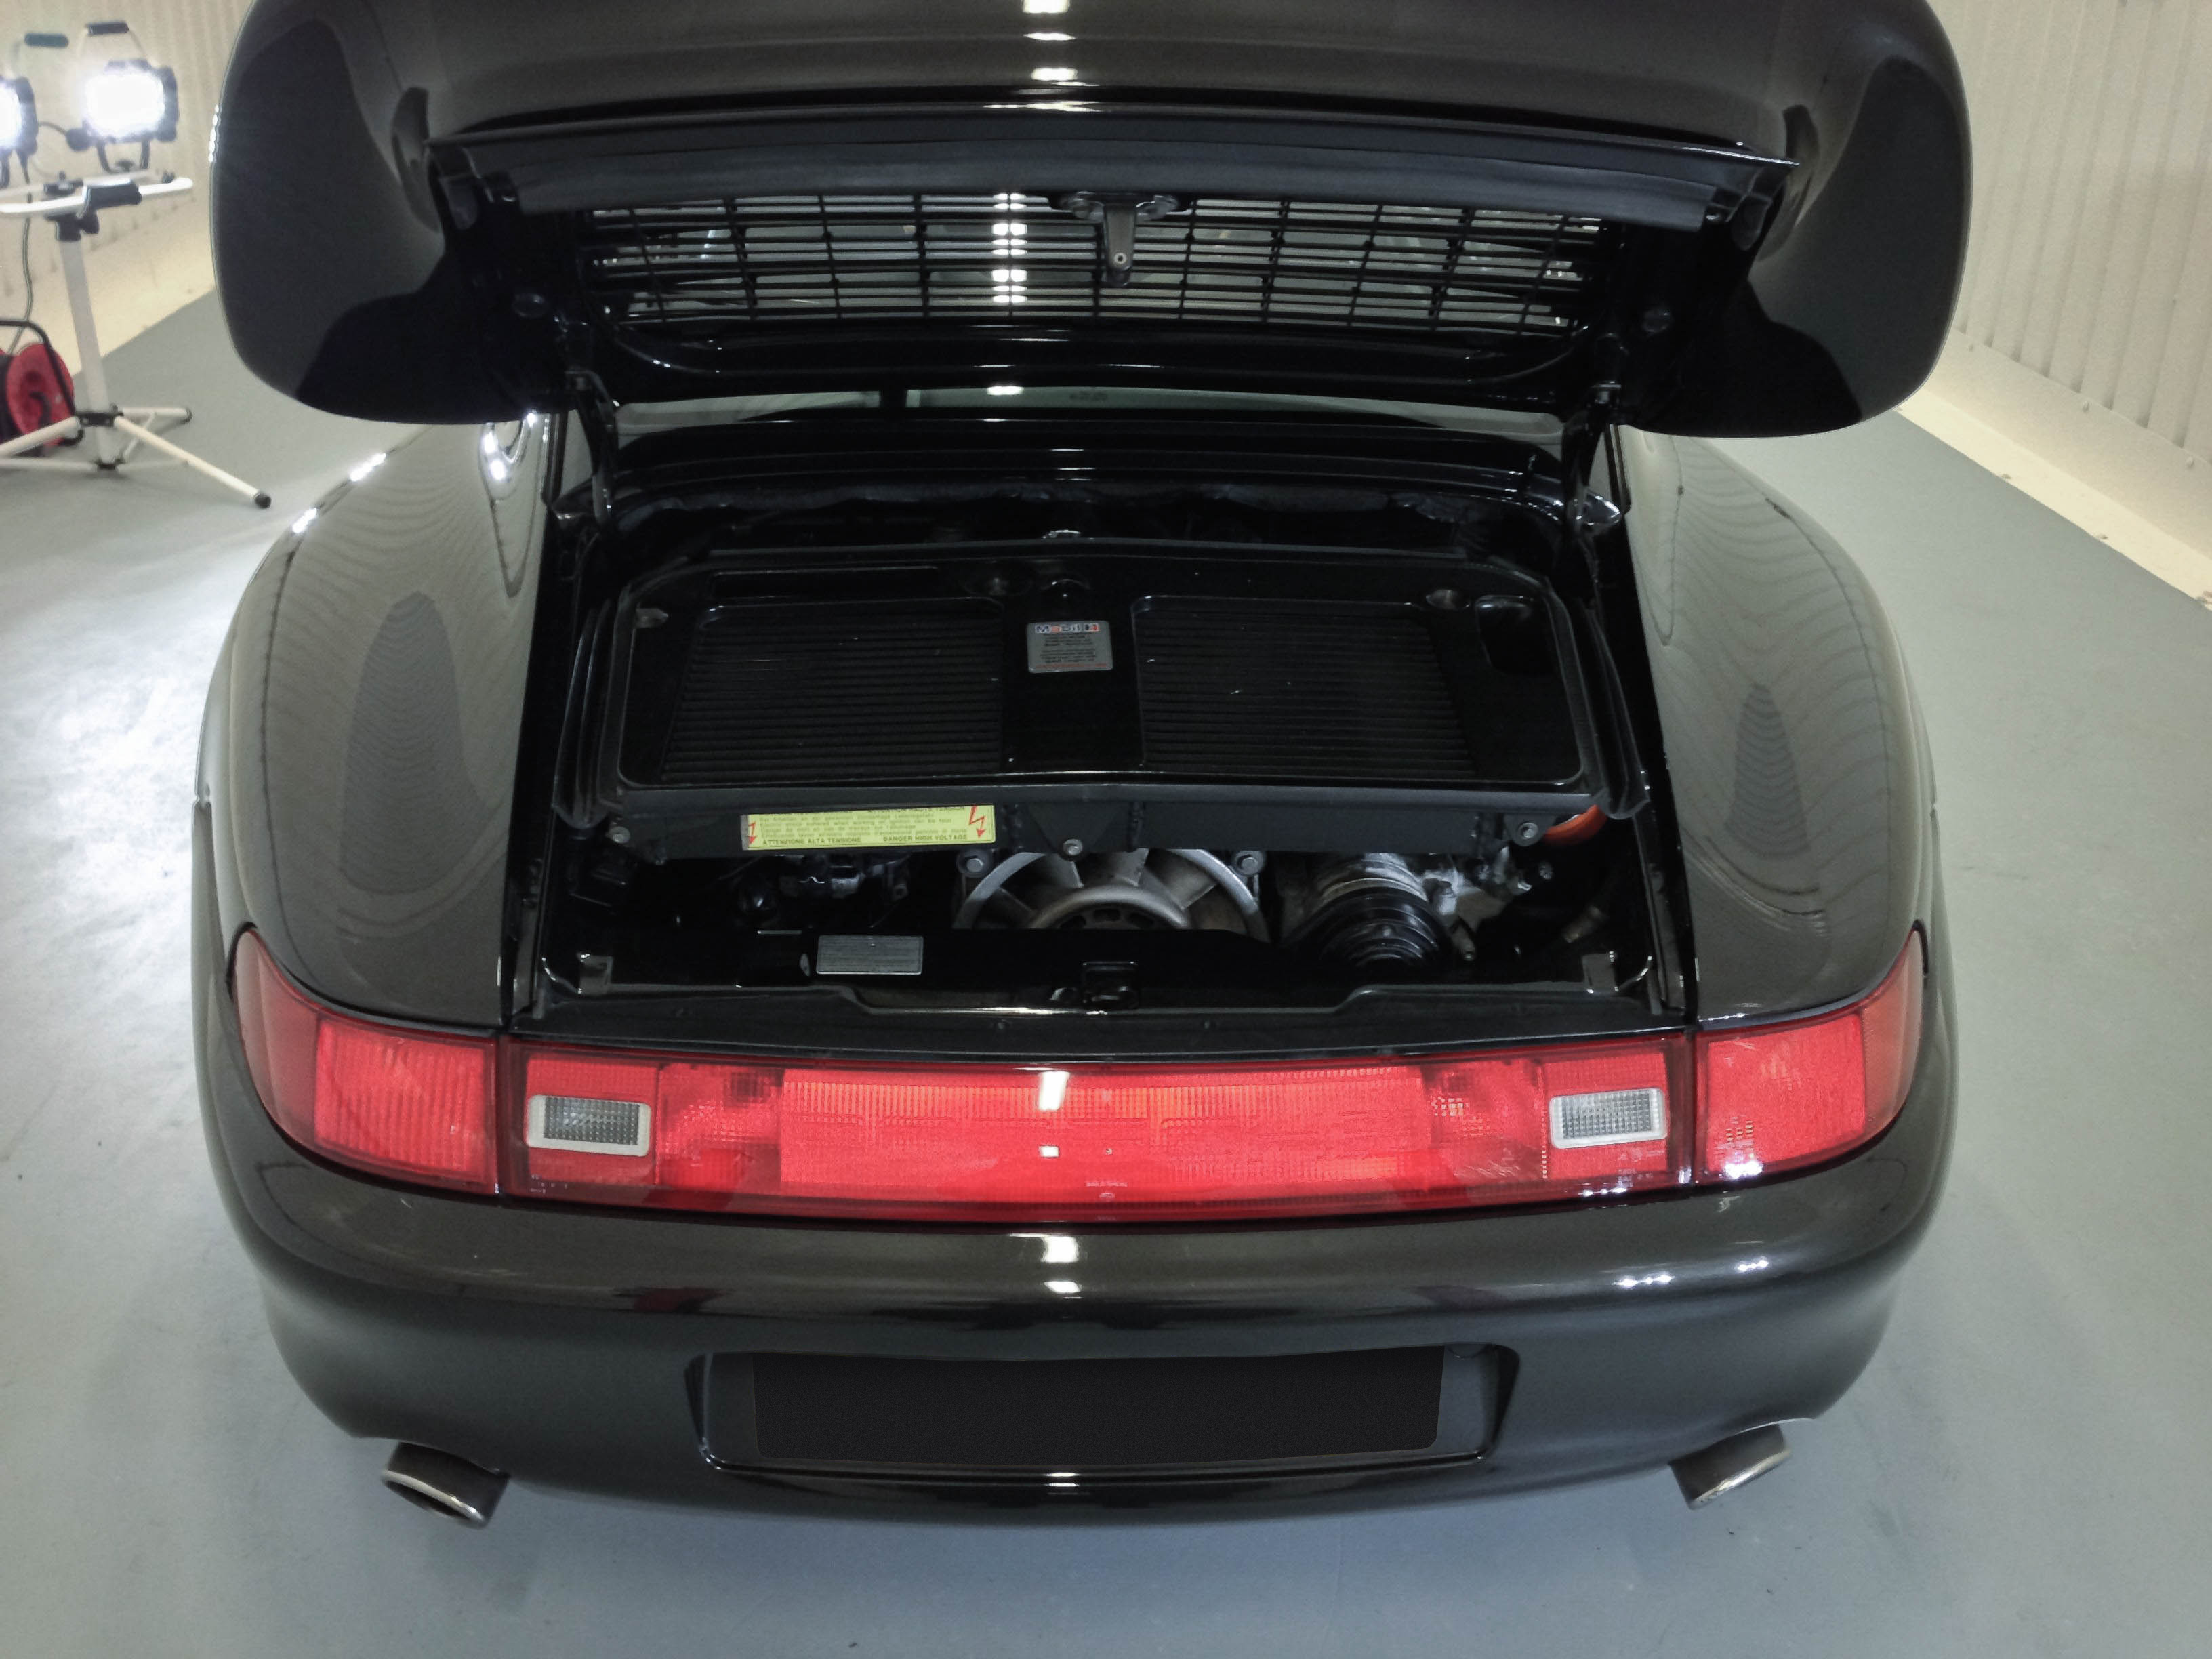 Porsche 911 Turbo – Clean engine